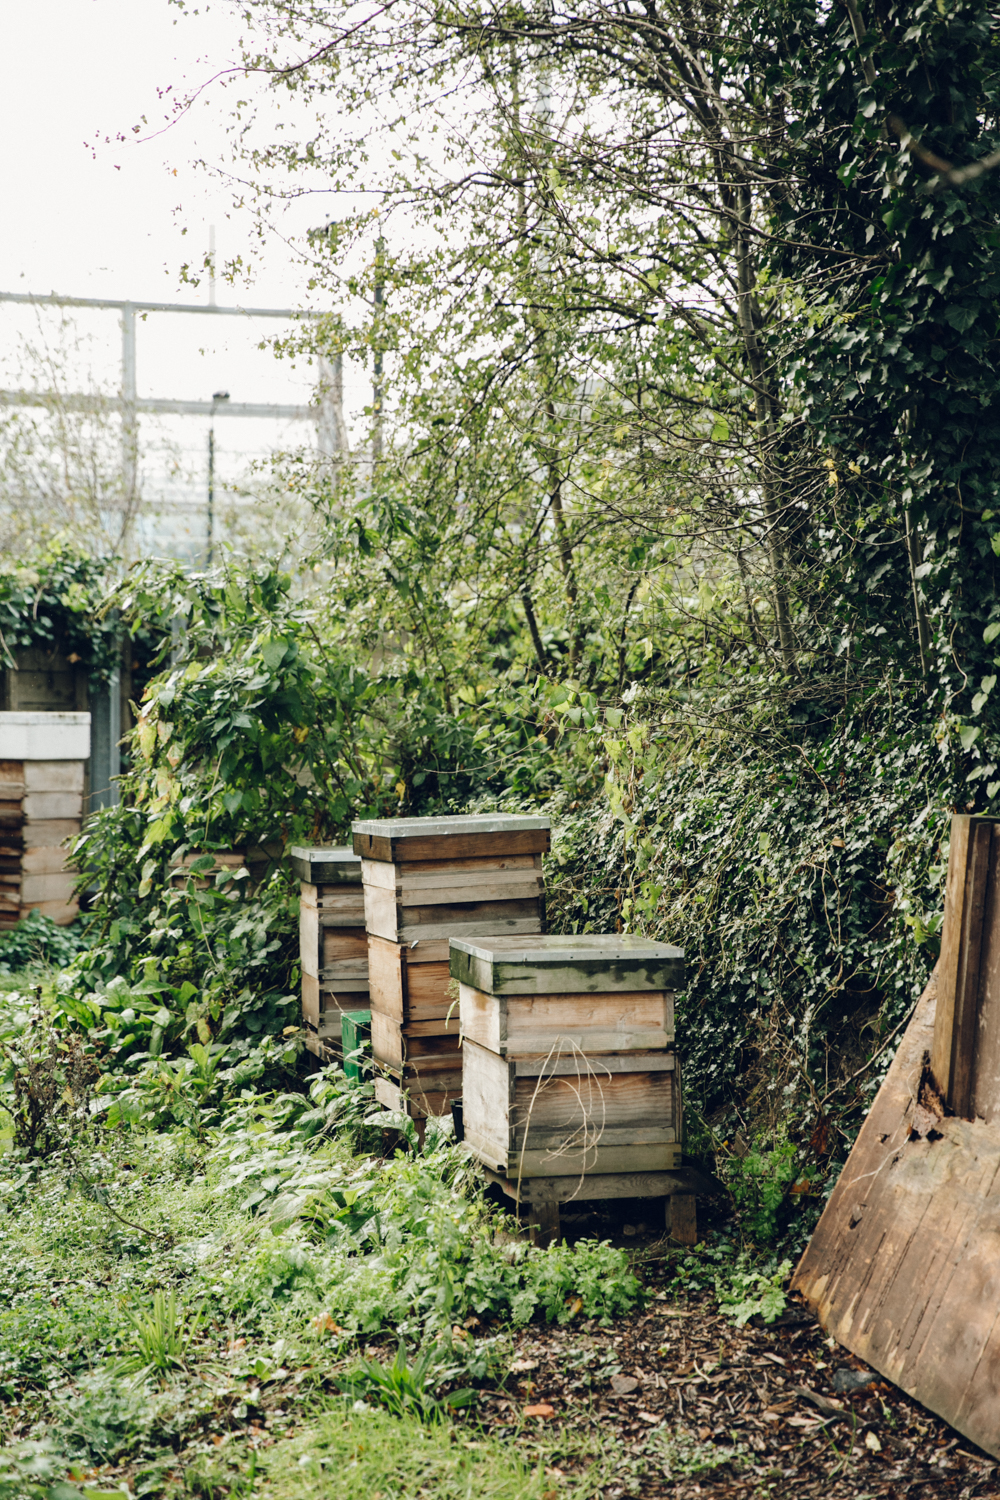 Haarkon Harkon Bee Bees Hive Hives Honey London Urban Allotment